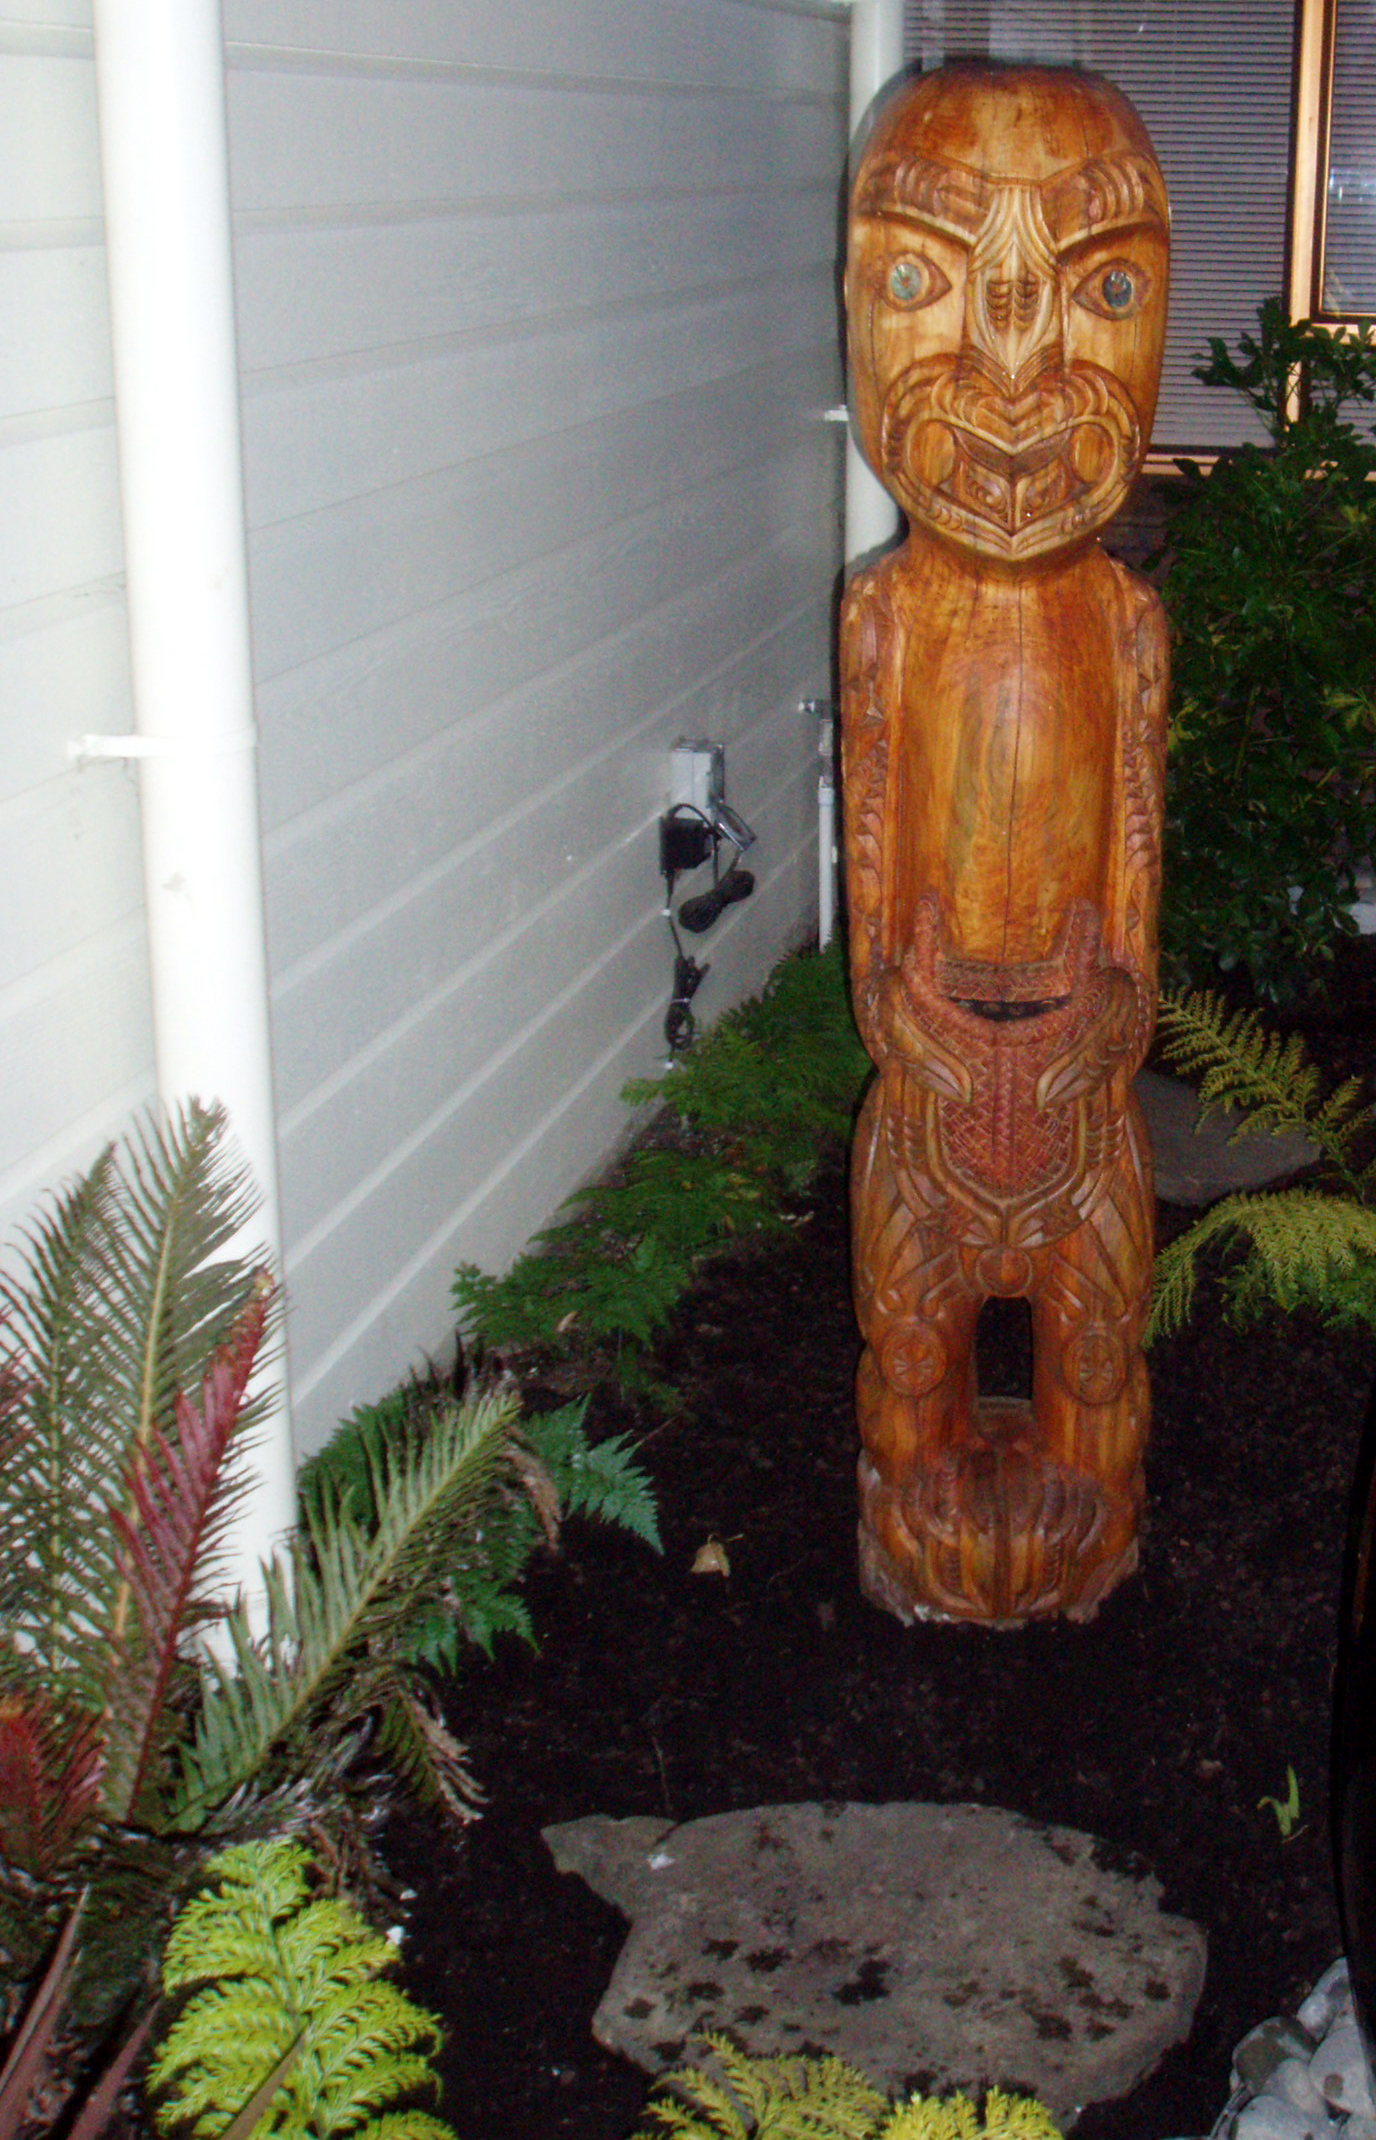 The pou (carved pole), in the garden in front of the North Shore Hospice